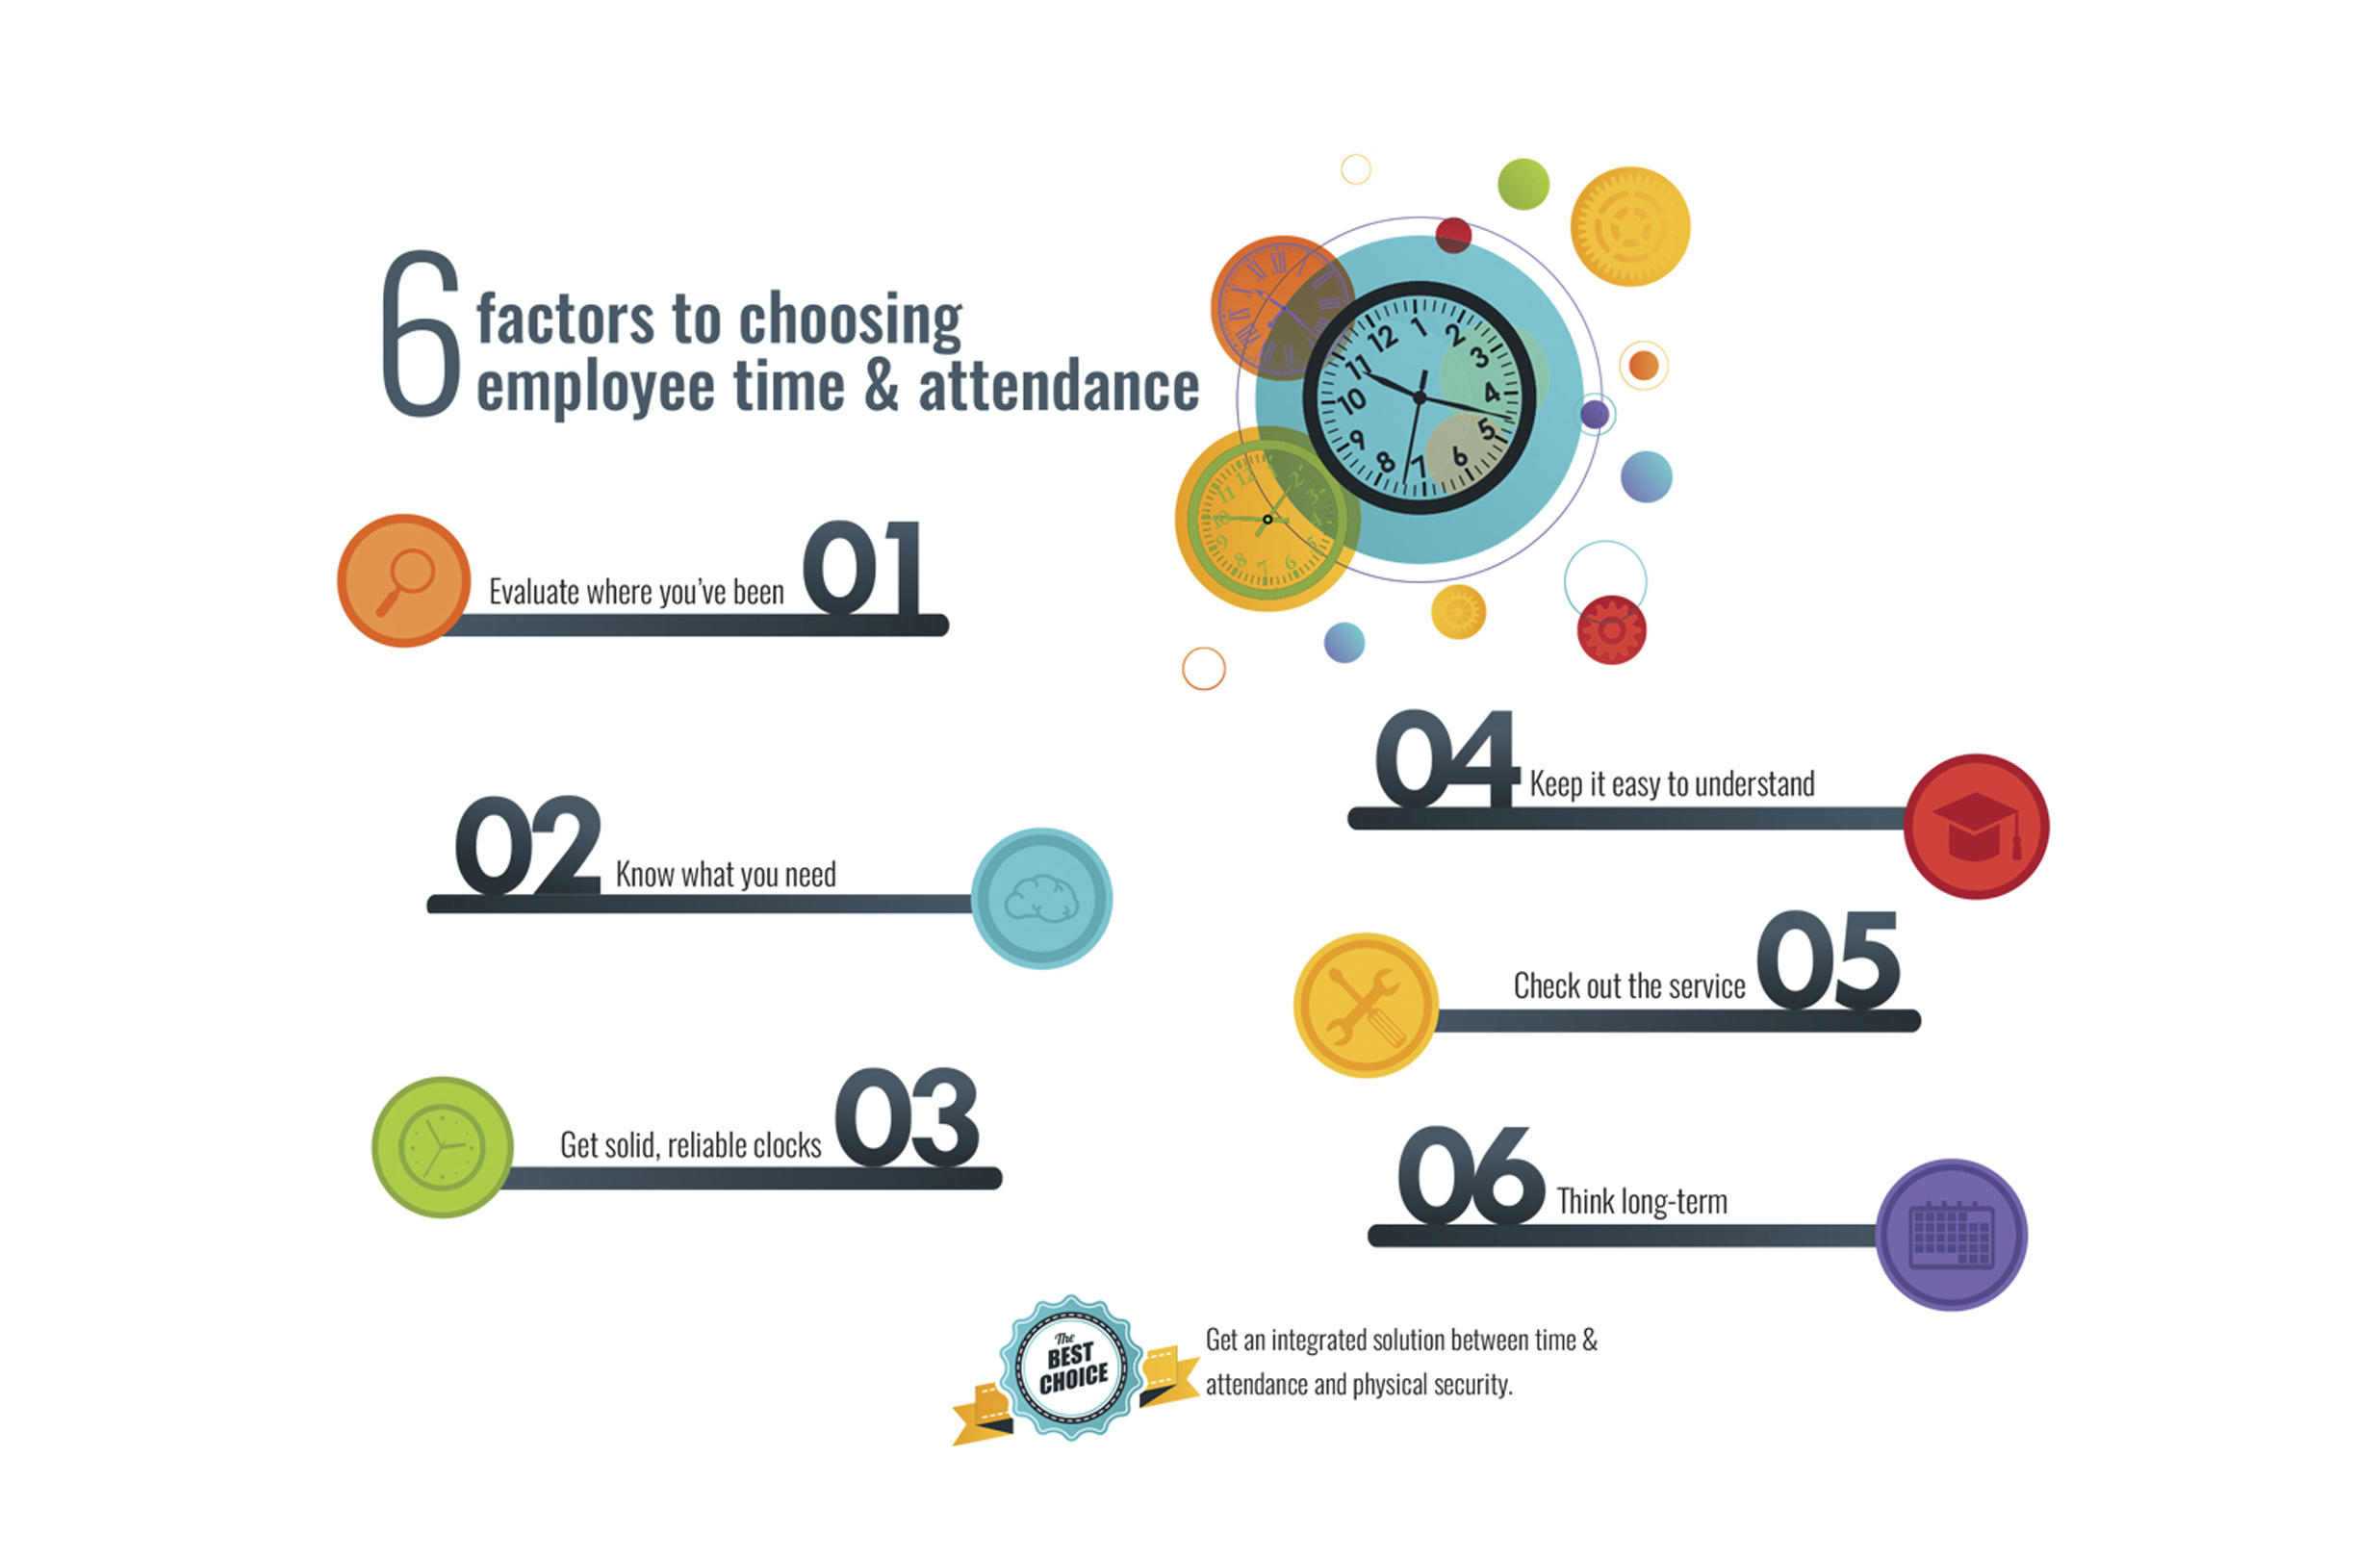 Choosing time and attendance